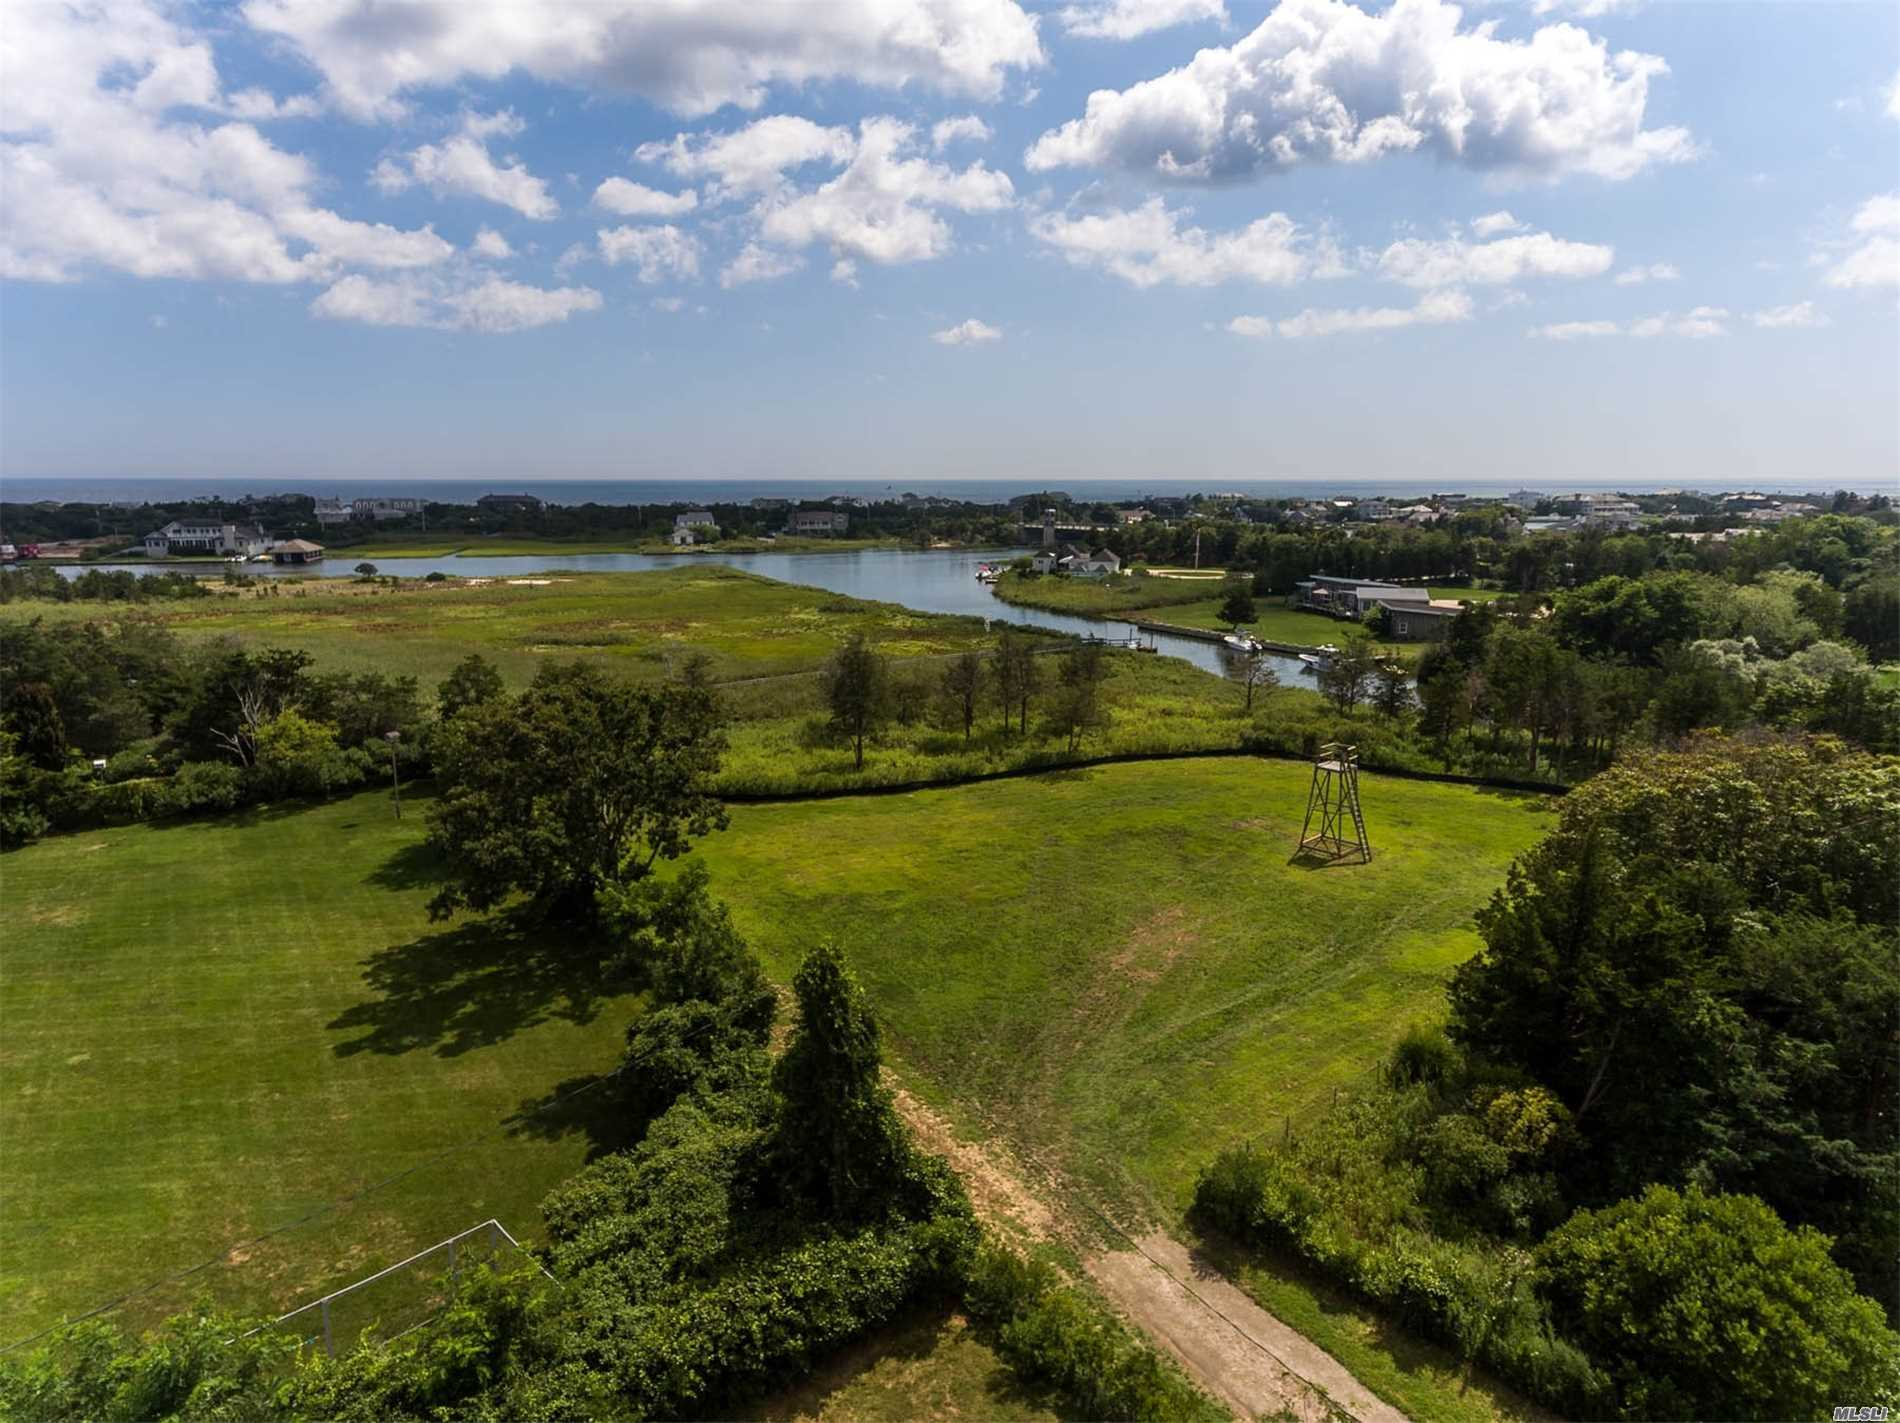 Situated On A Deep Water Canal, 1.5 Acre Parcel Includes Dec & Board Of Health Permits For 5000 Sq. Ft. 2 Story Home With Panoramic Views Including Swimming Pool & Spa, Garage, Deck. Ready To Build Fixed Pier To Protected Boat Dock. Quogue Village Beach Access And Low Taxes. A Very Special Location To Build Your Dream Home!